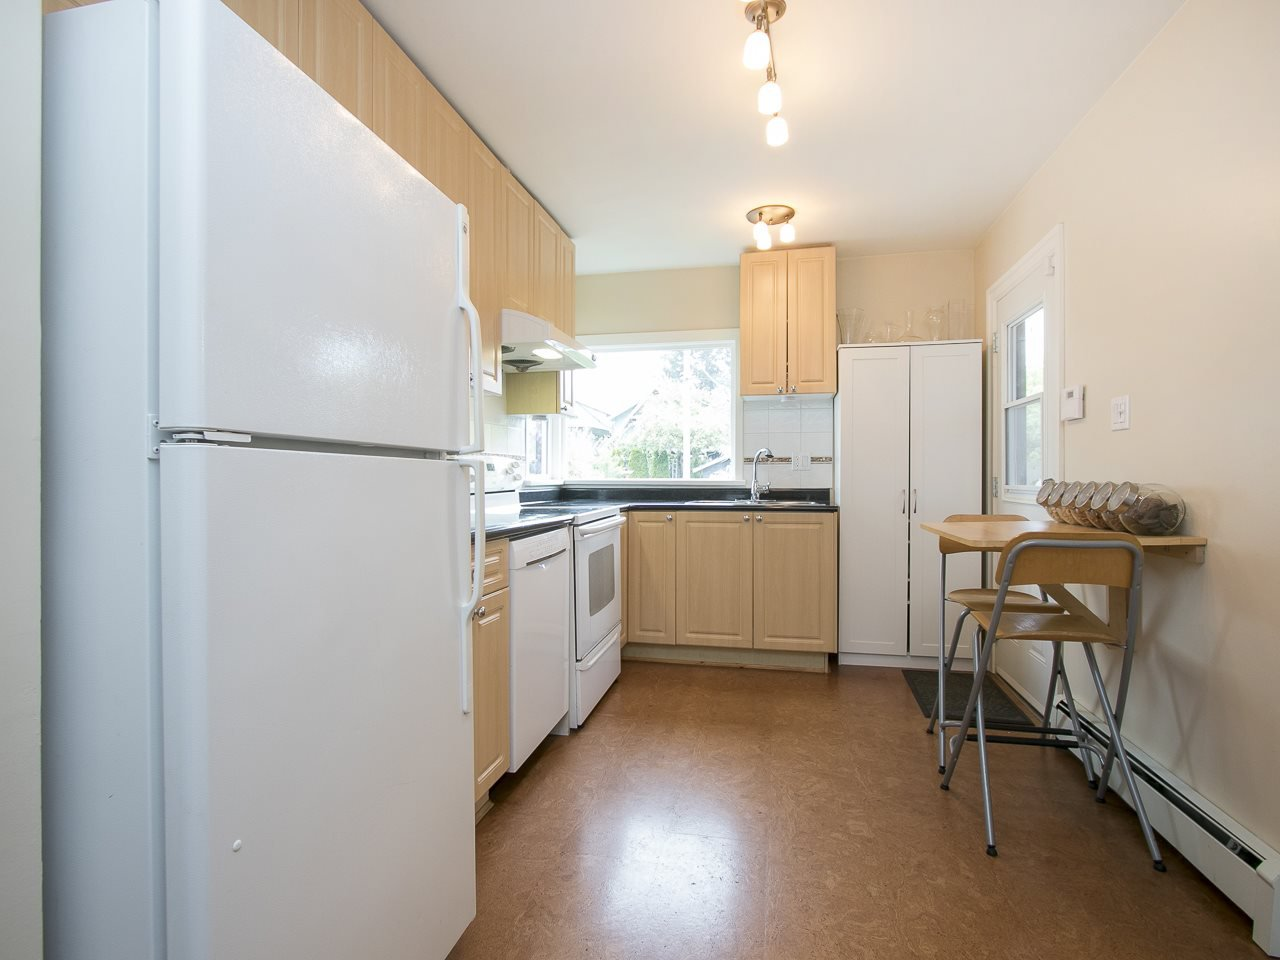 Photo 9: Photos: 731 W KING EDWARD AVENUE in Vancouver: Cambie House for sale (Vancouver West)  : MLS®# R2204992